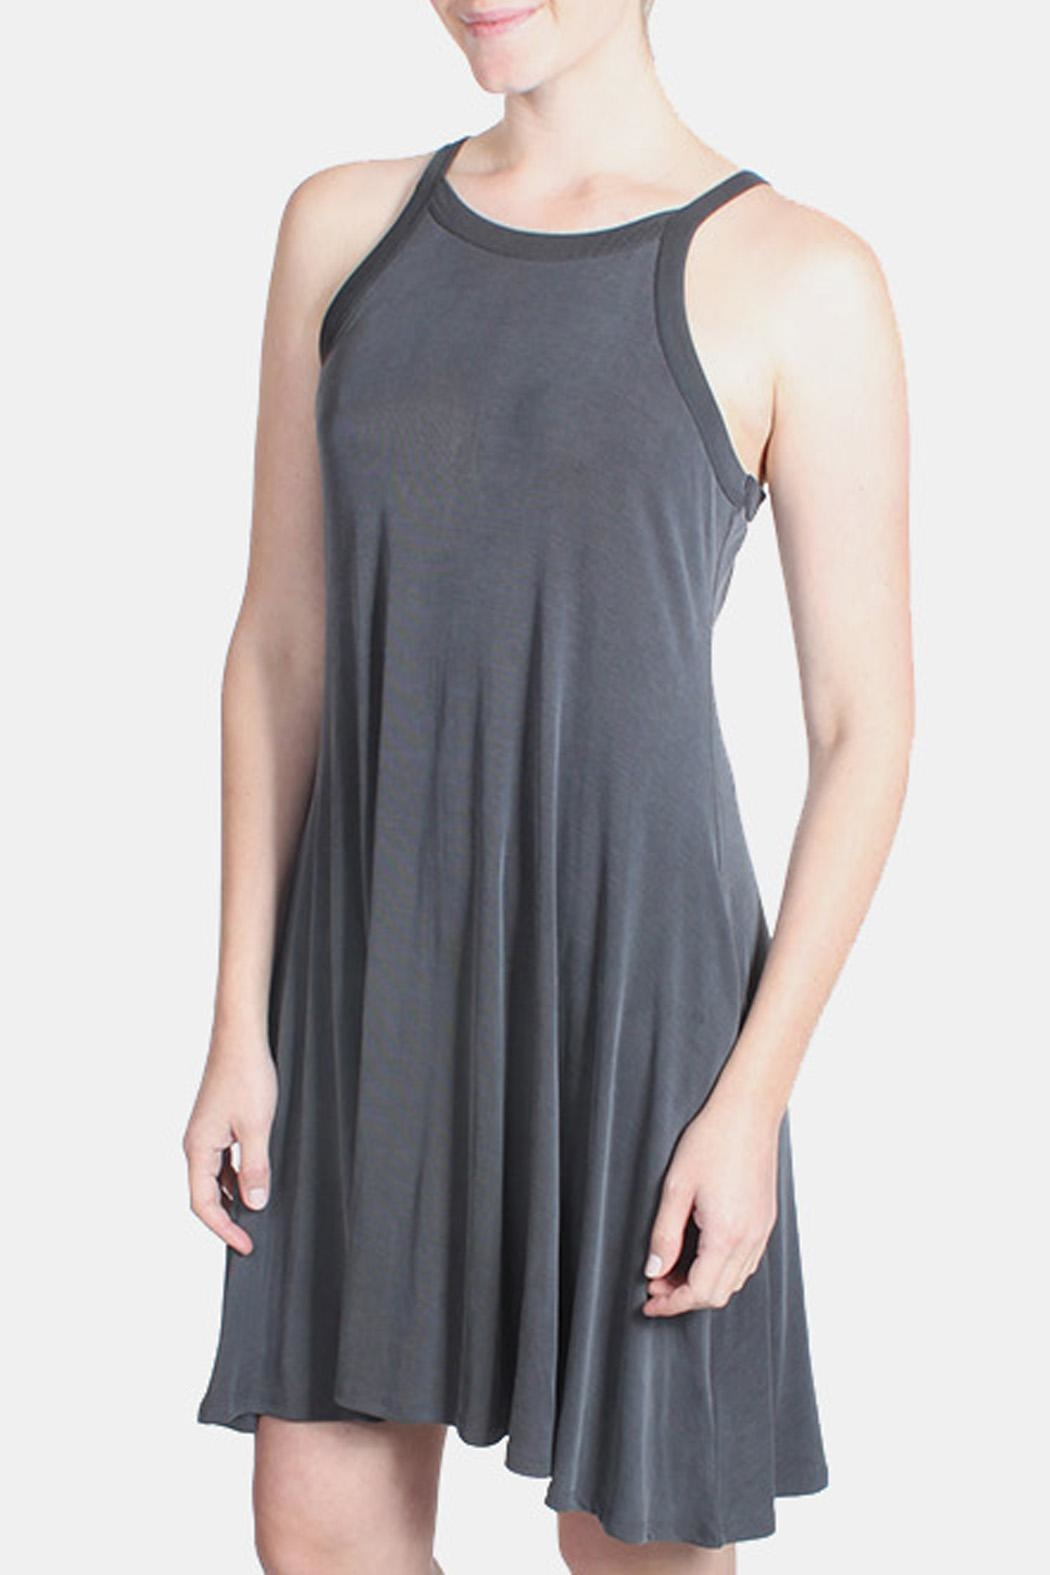 Chris & Carol Charcoal Ribbed Dress - Side Cropped Image